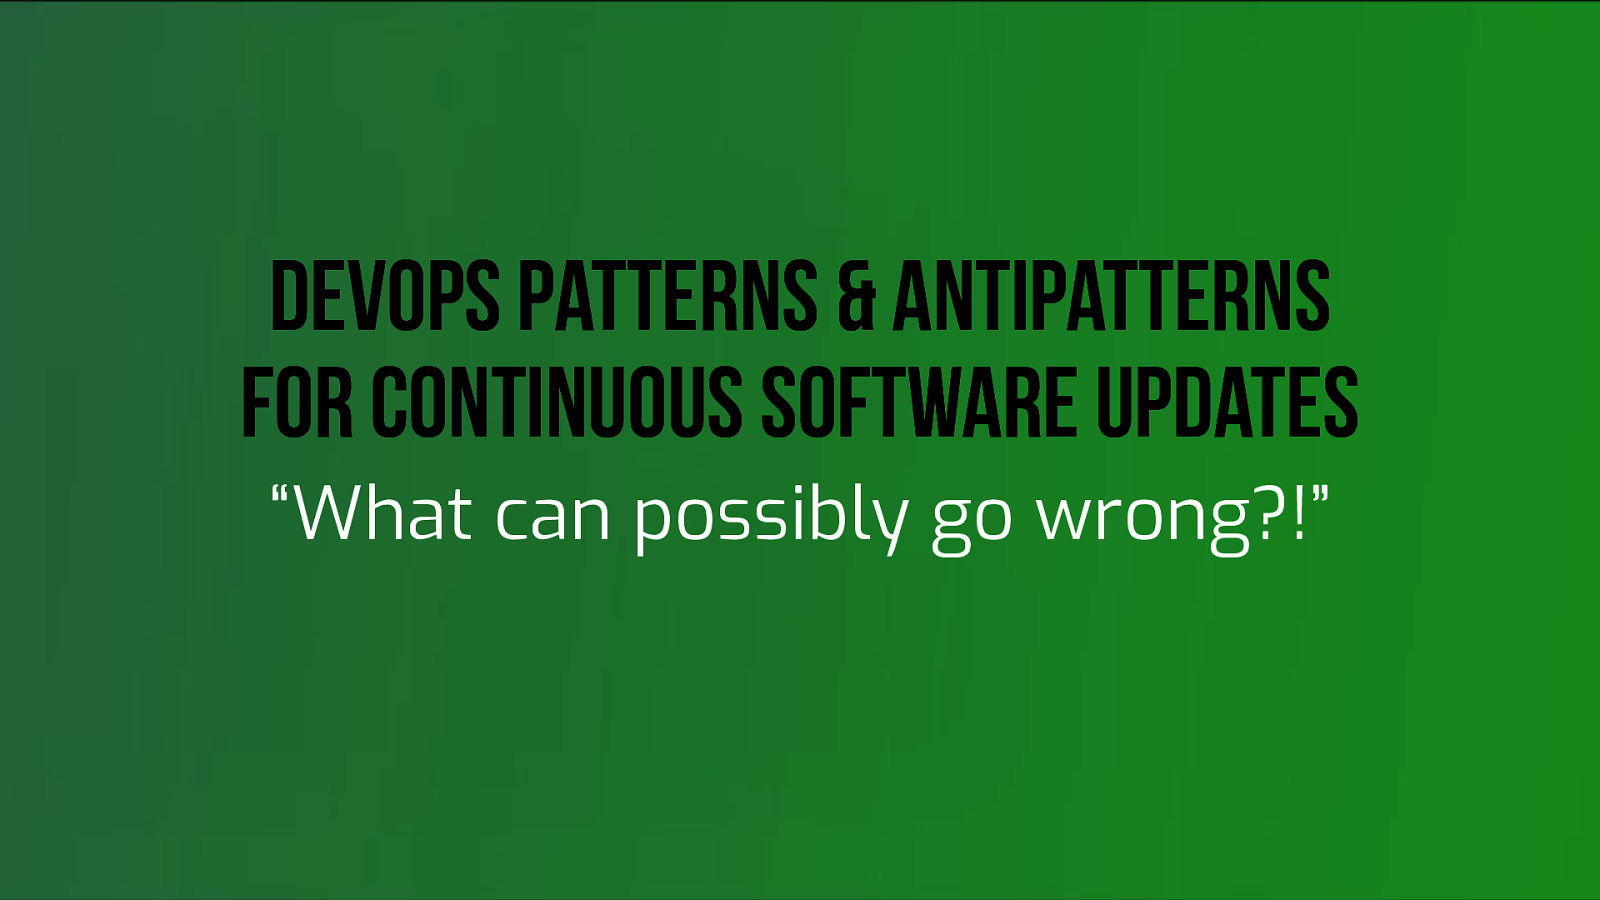 DevOps Patterns & Antipatterns for Continuous Software Updates